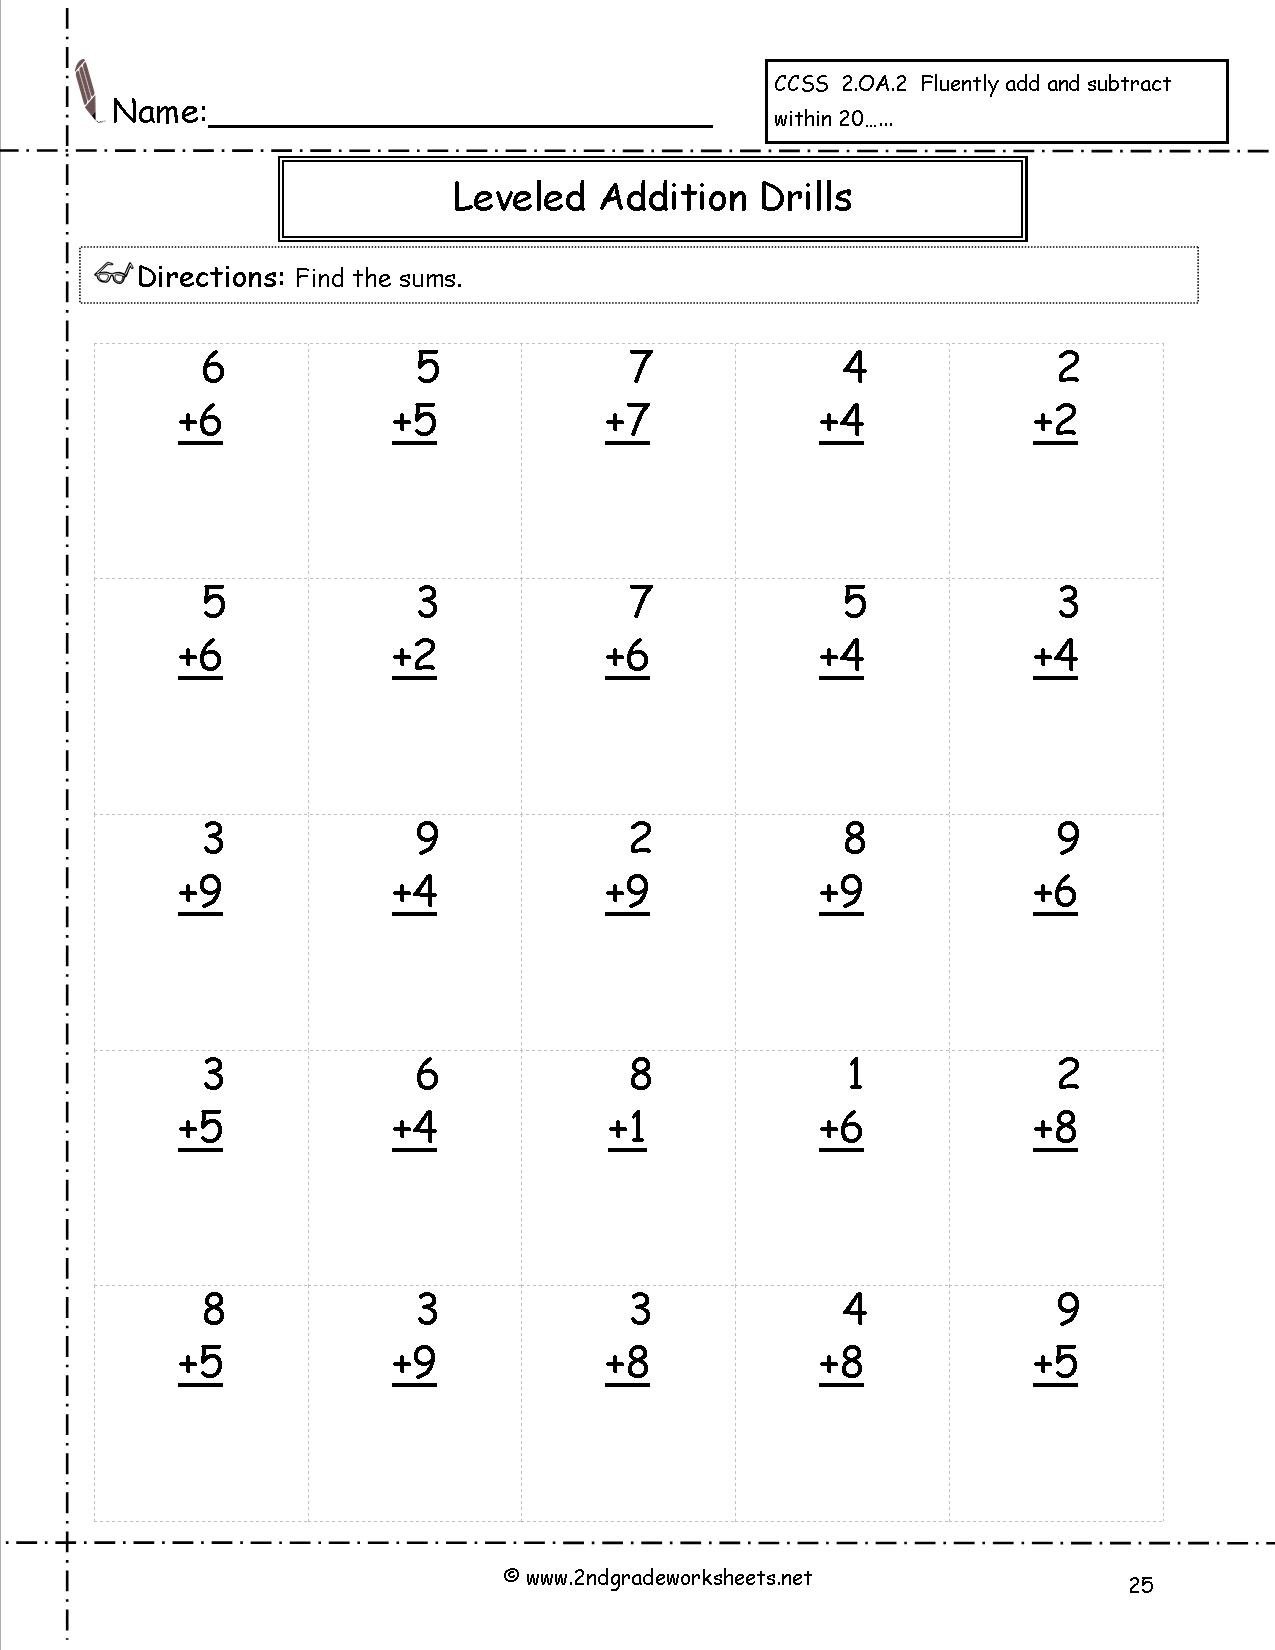 Printable Second Grade Math Worksheets To Free Download